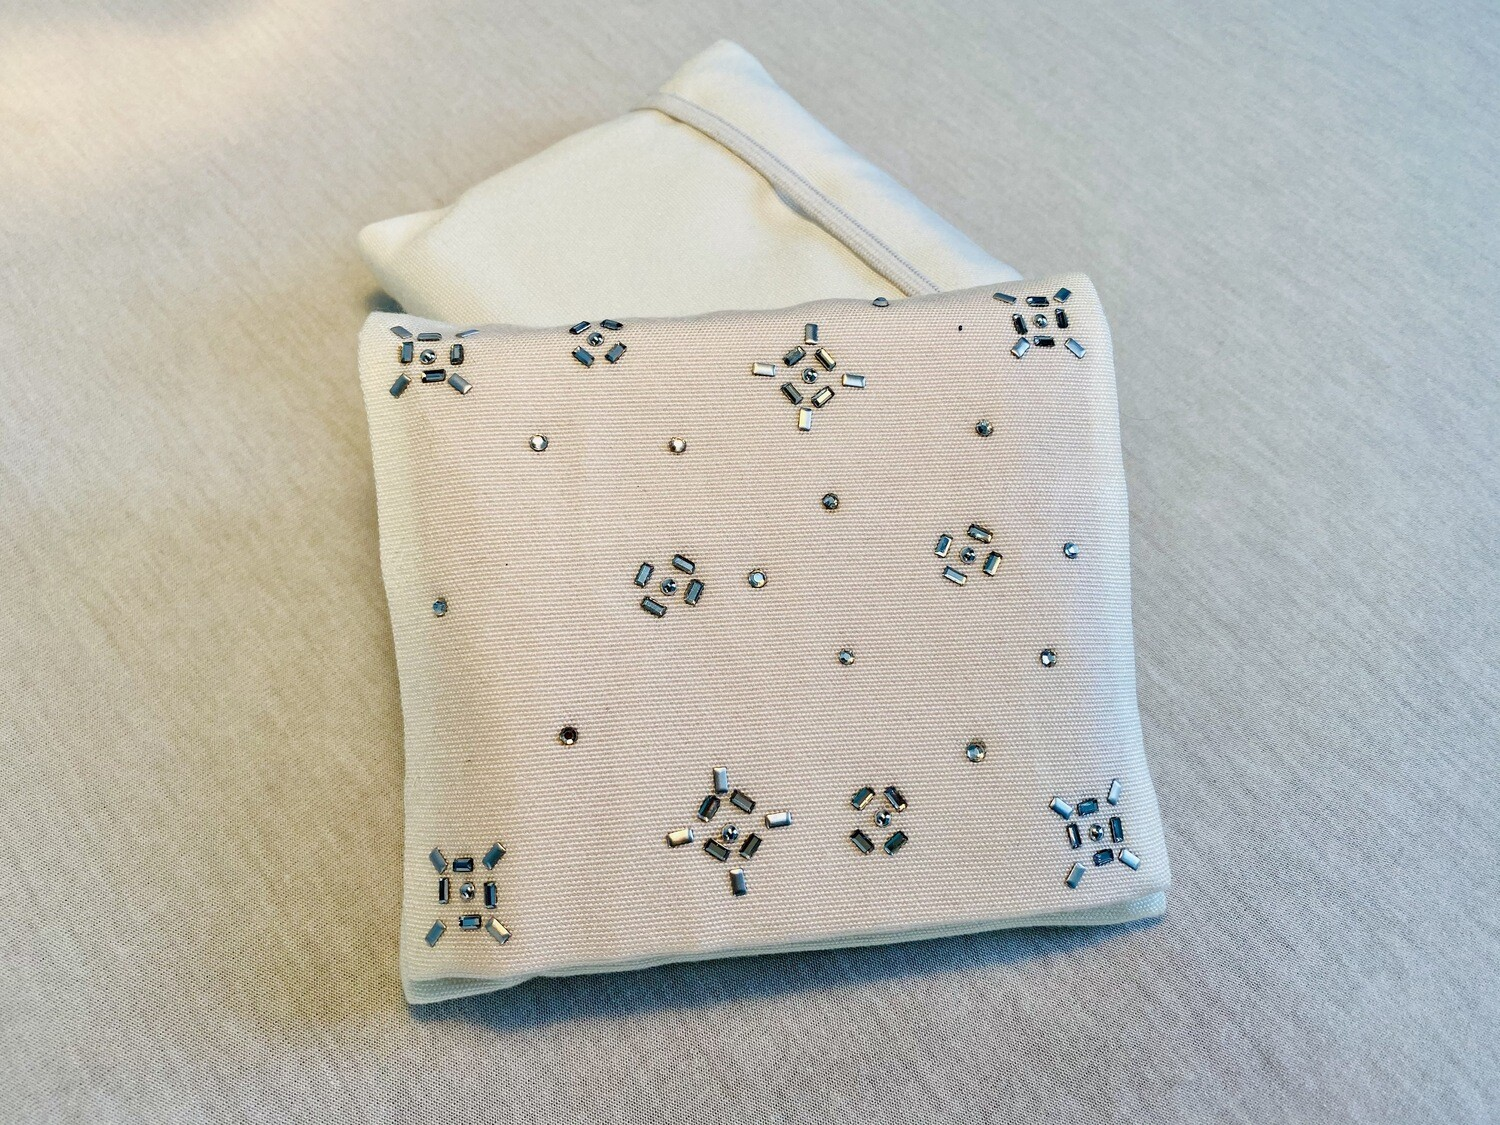 Pochette 5 Lingettes Double compartiment - Strass flocons2